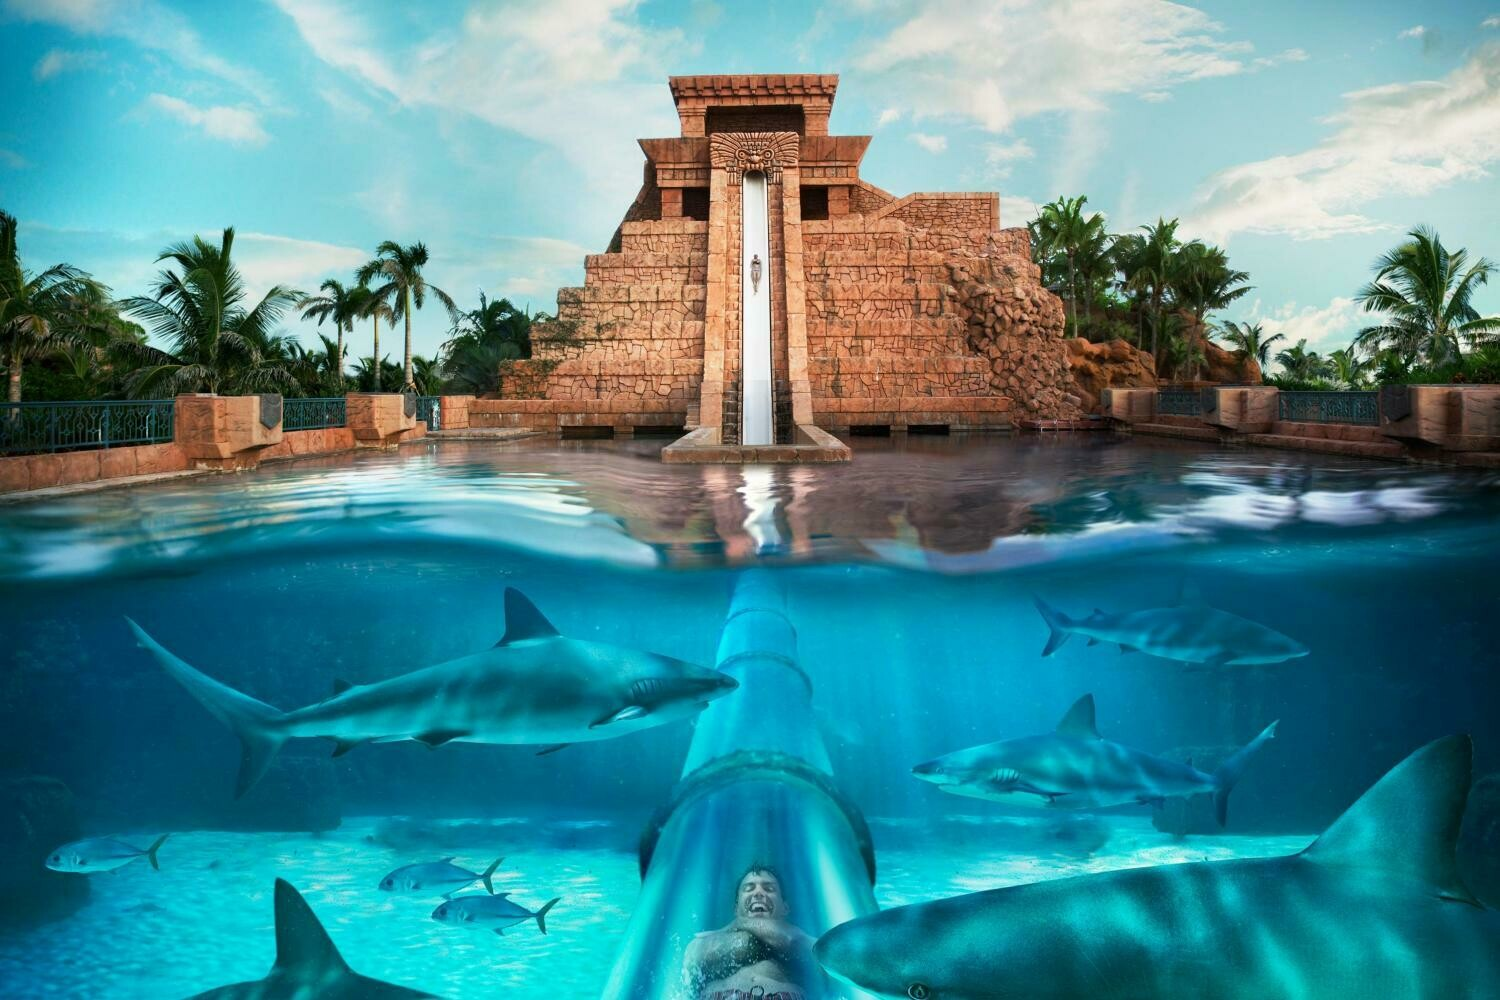 AQUAVENTURE & LOST CHAMBERS, ALTANTIS THE PALM 289 AED